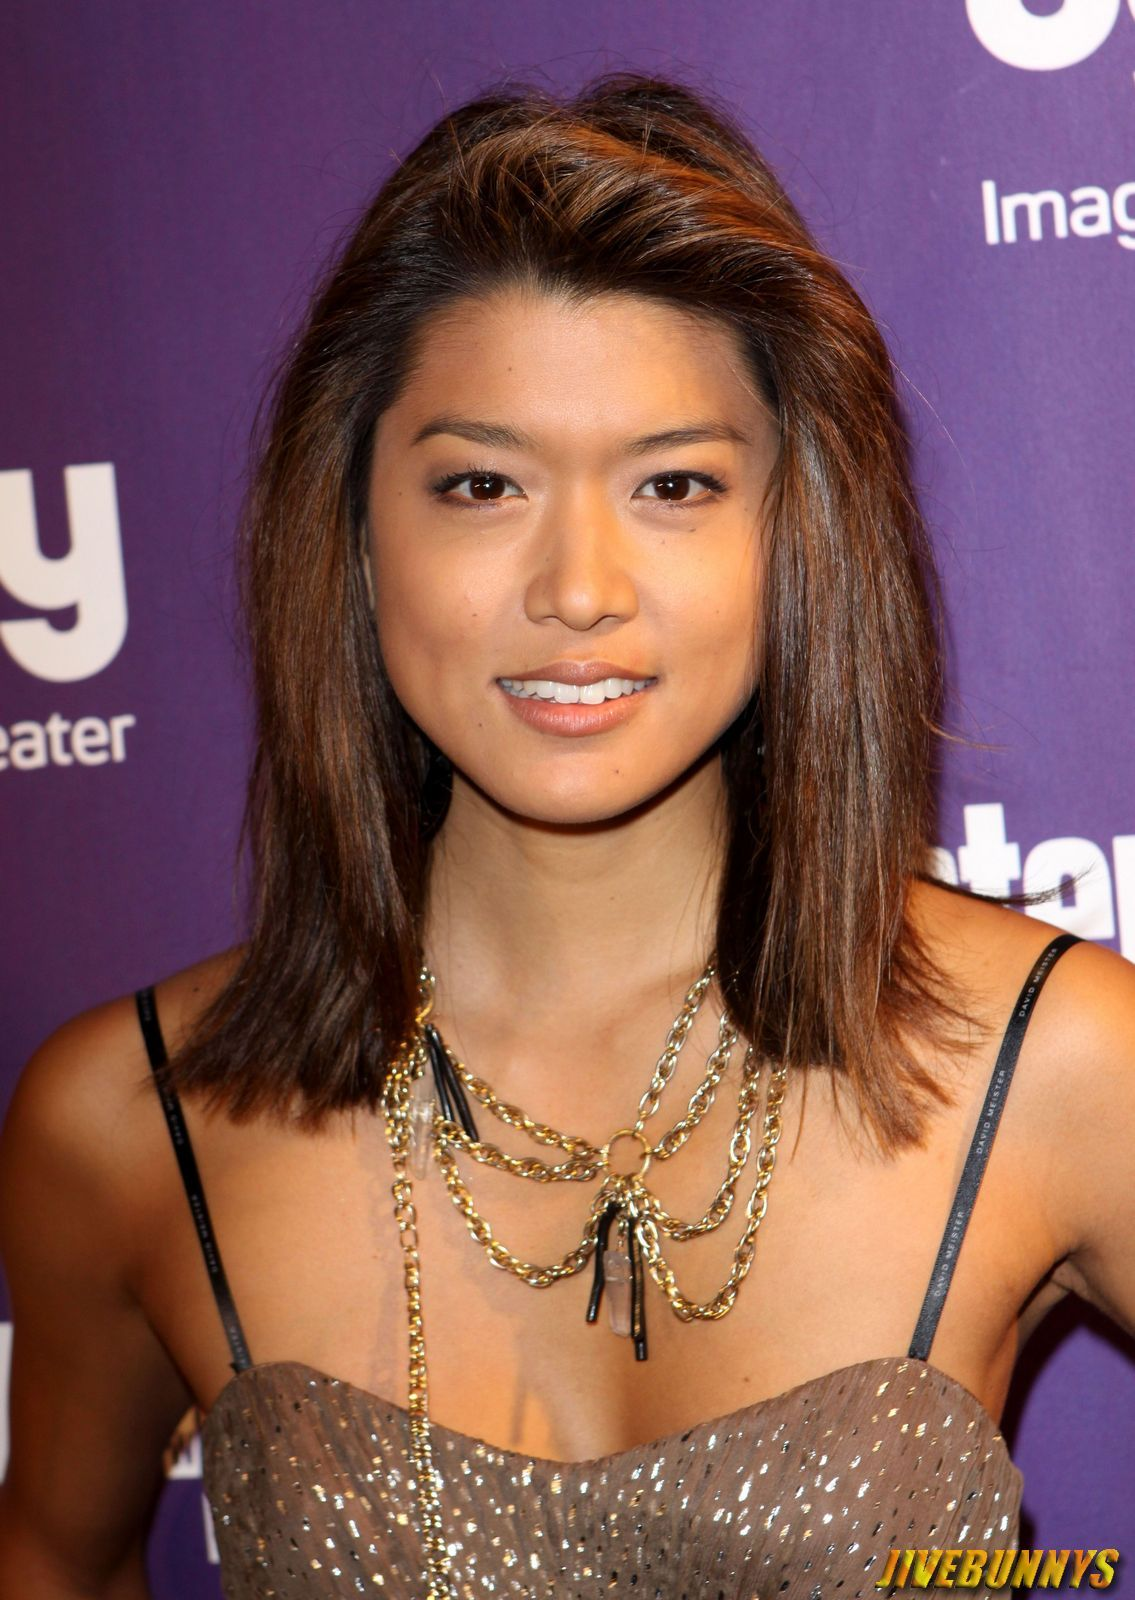 Nudes Grace Park Actress 17 Foto Boobs, Snapchat-4977